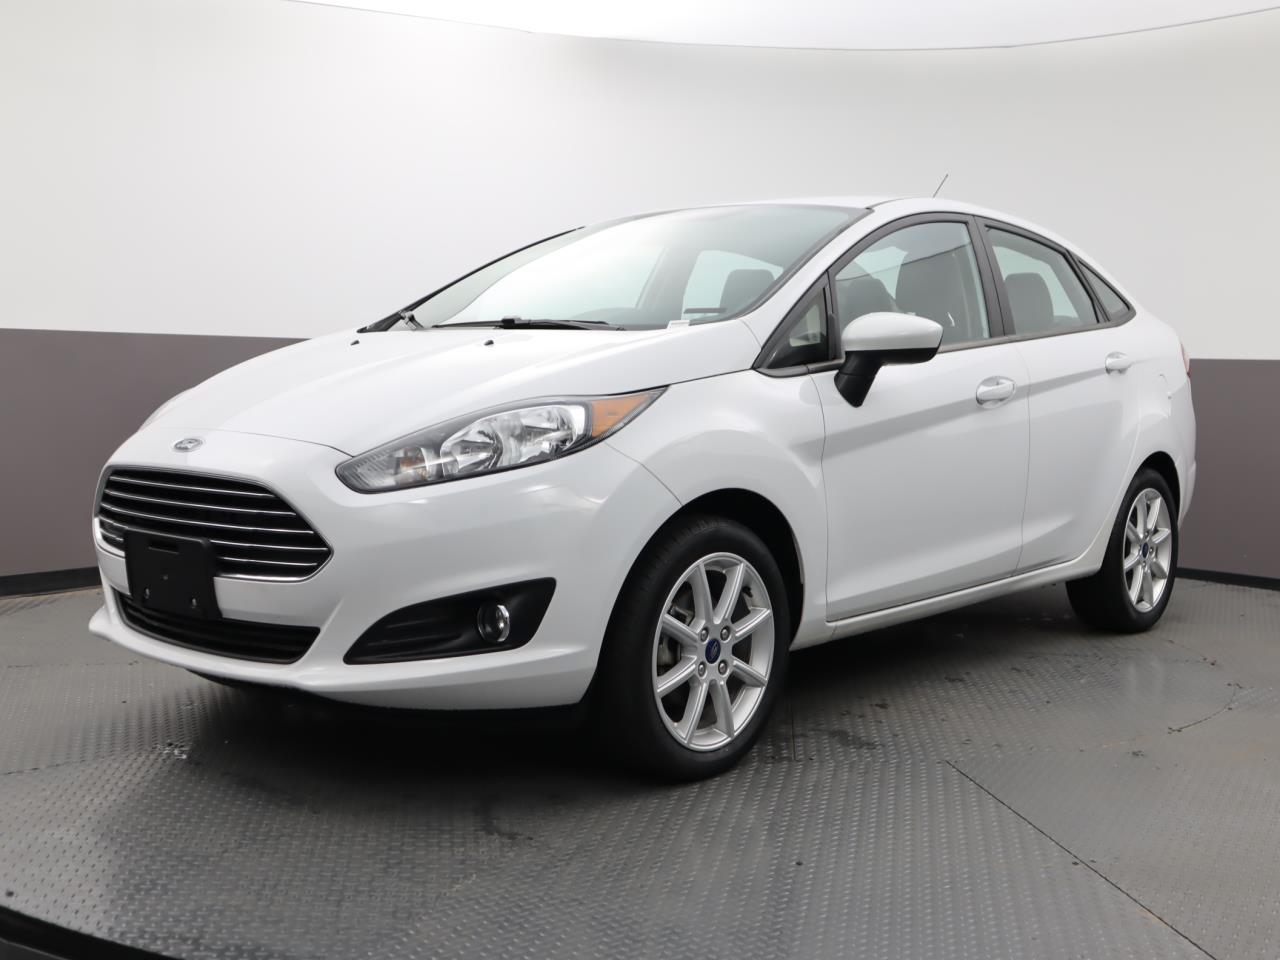 Used FORD FIESTA 2019 MARGATE SE